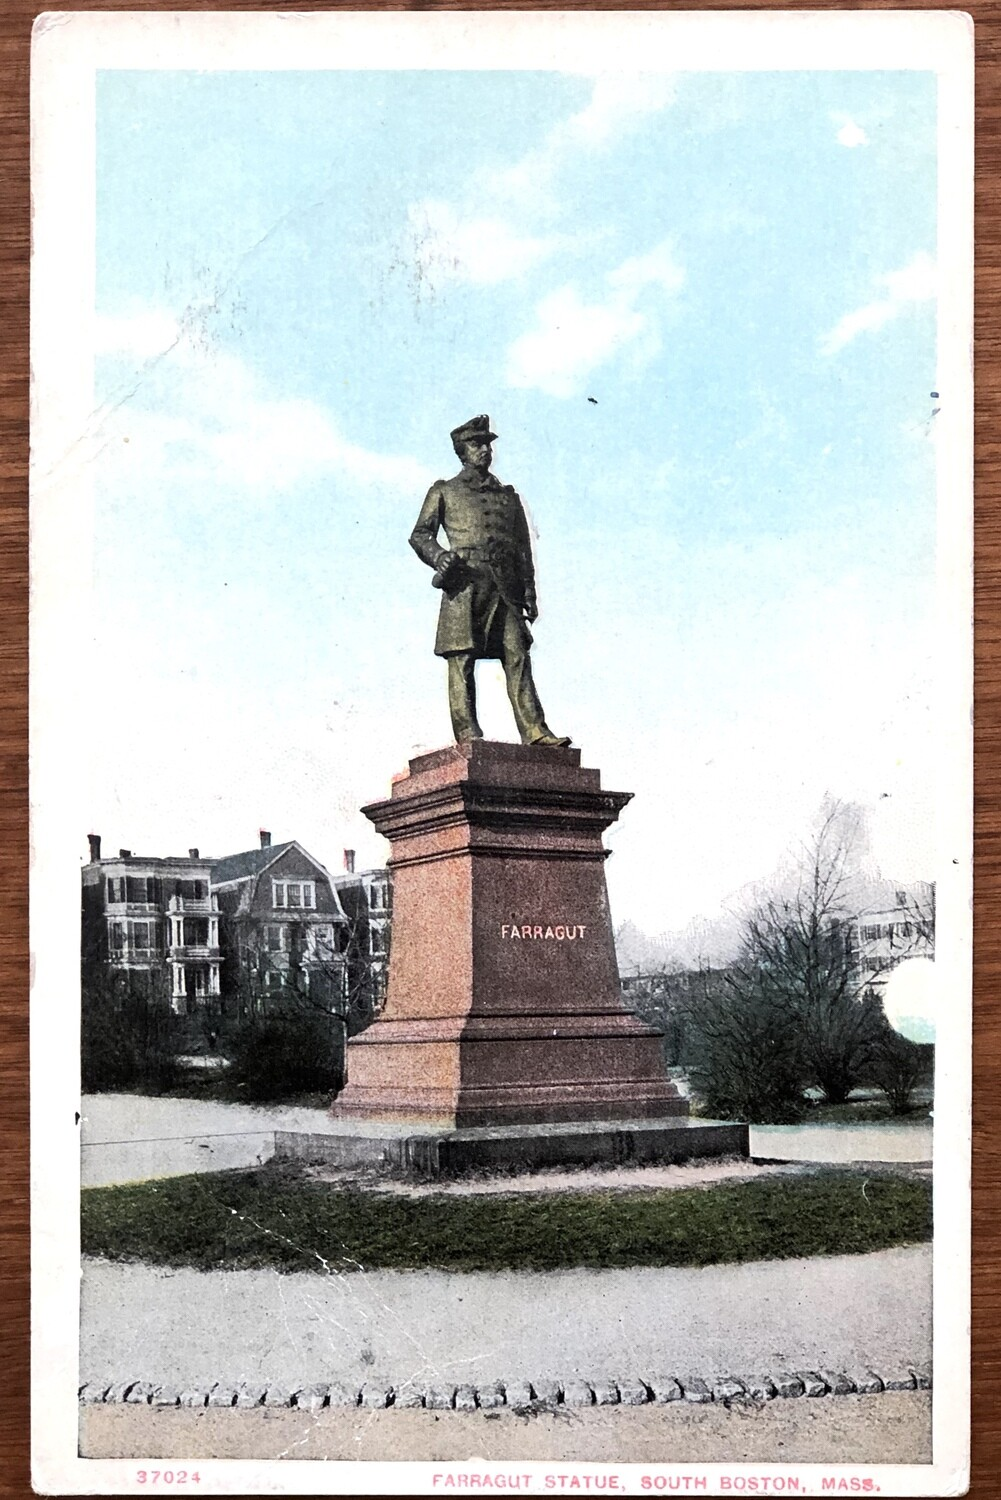 Farragut Statue South Boston Mass. Vintage Postcard